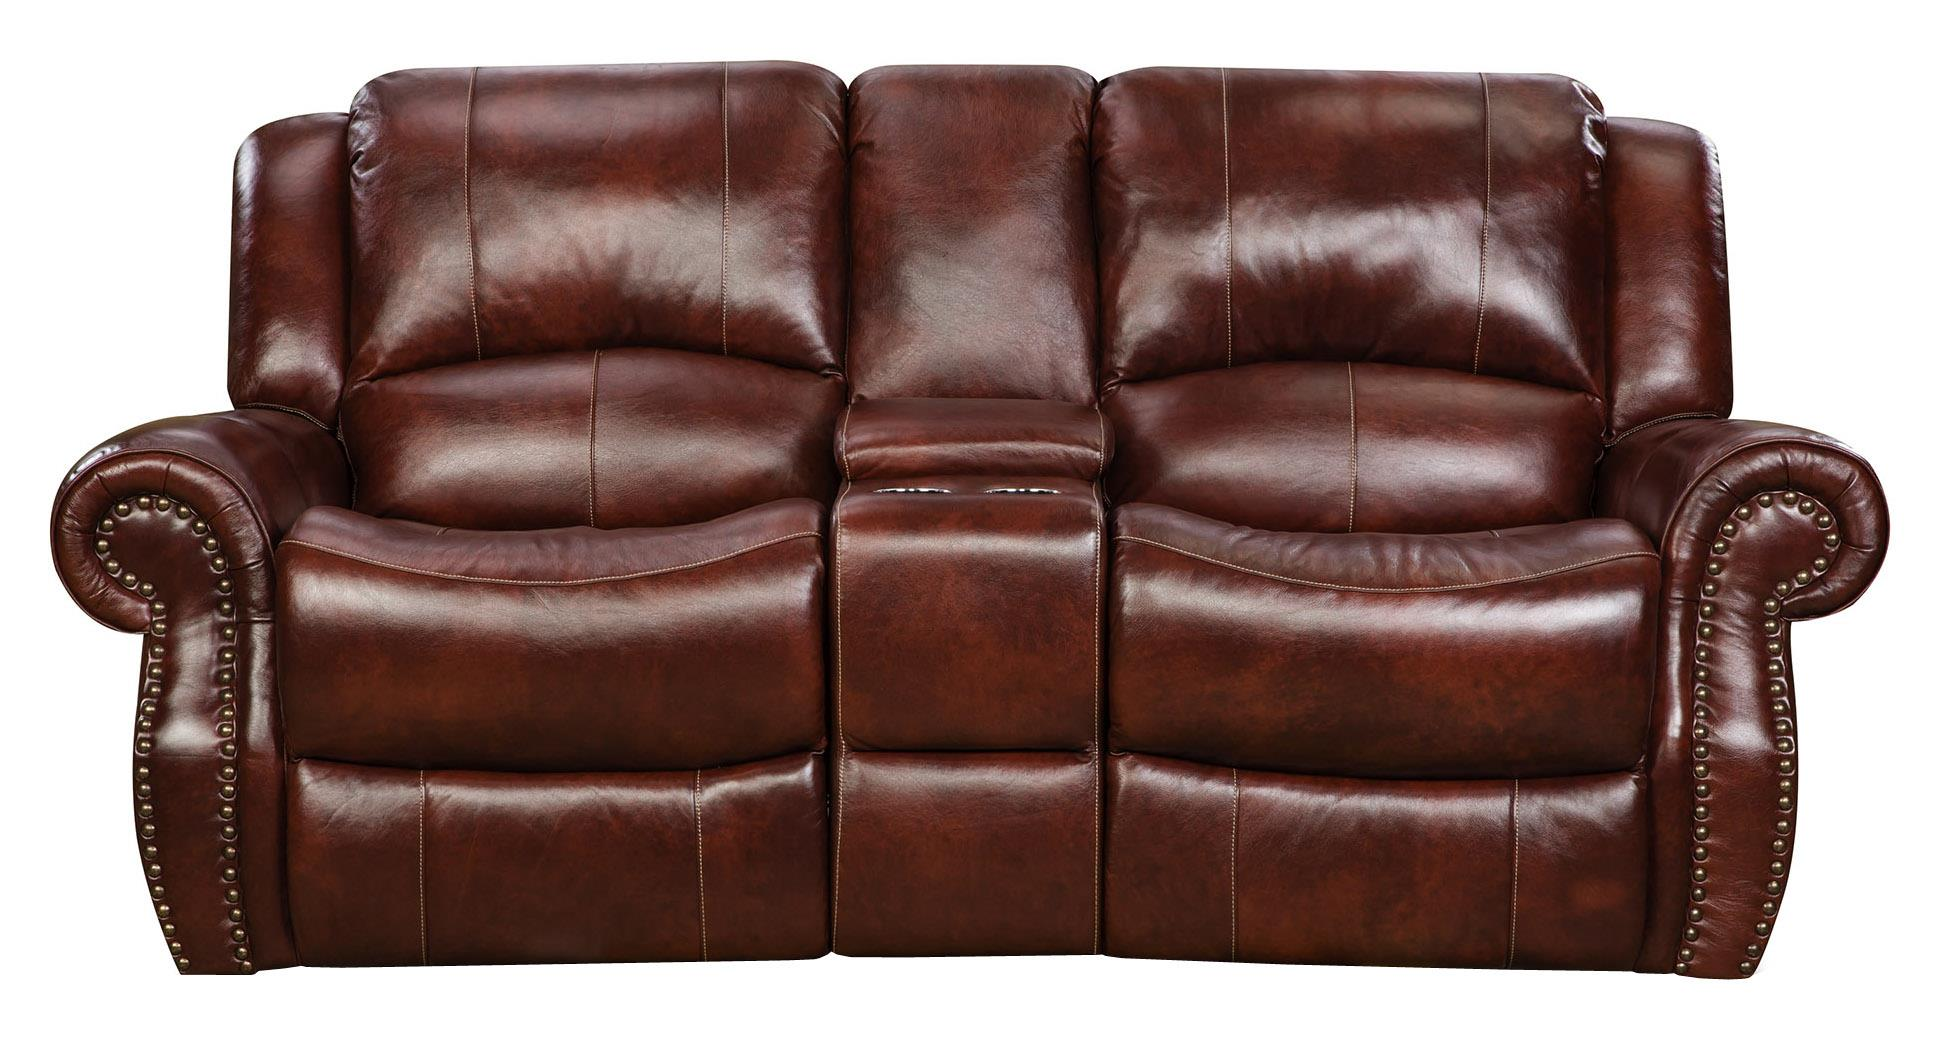 Corinthian Alexander 99901 40 Alexander Leather Reclining  : products2Fcorinthian2Fcolor2F9990120motion20by20corinthian99901 40 madeoutbrown b1 from www.greatamericanhomestore.com size 1941 x 1038 jpeg 206kB